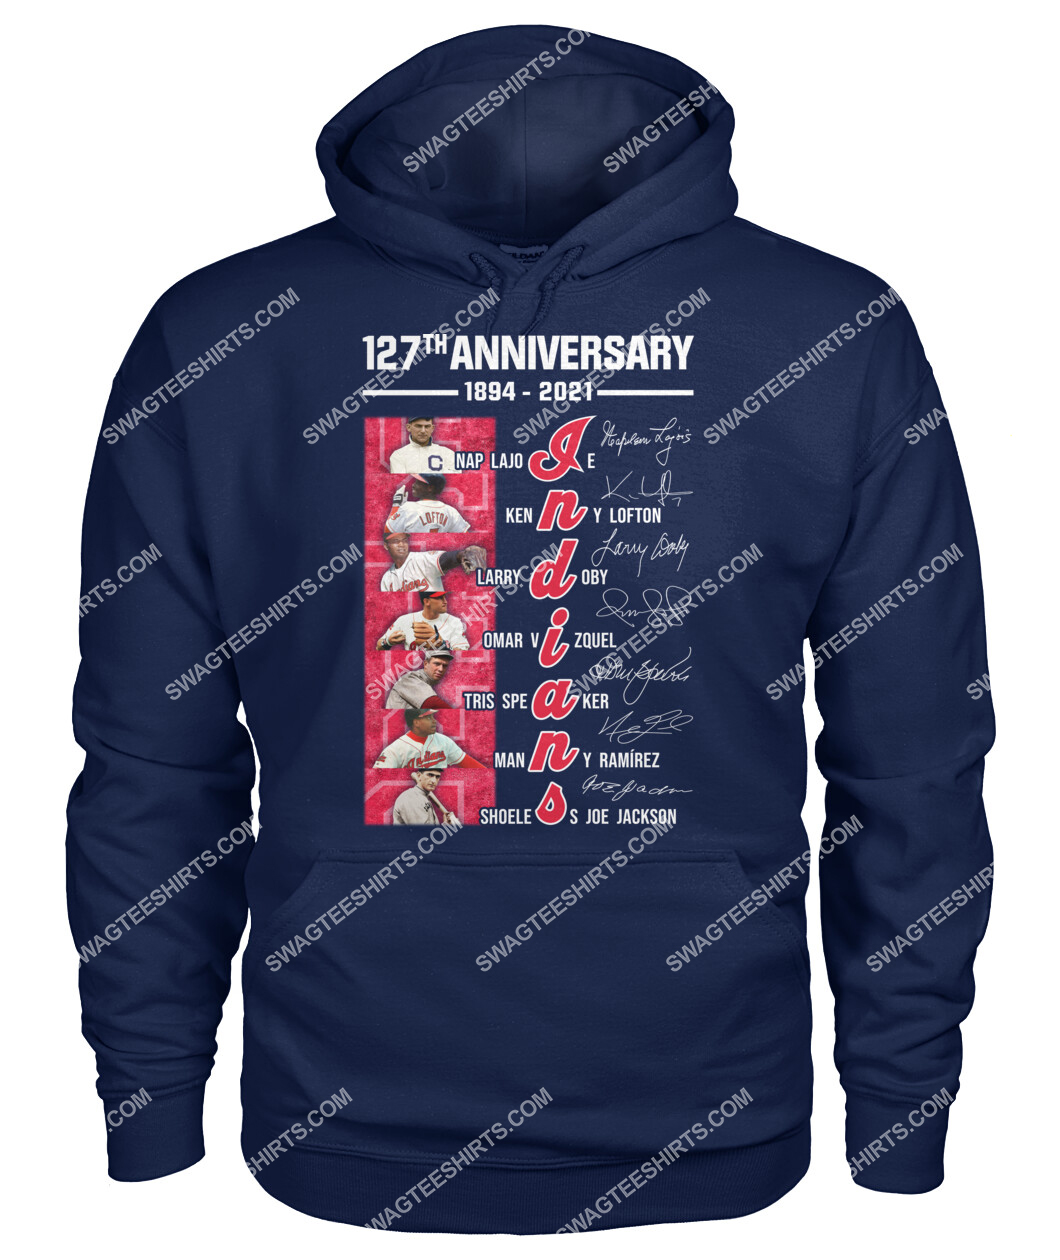 the cleveland indians 127th anniversary 1894 2021 signatures mlb hoodie 1